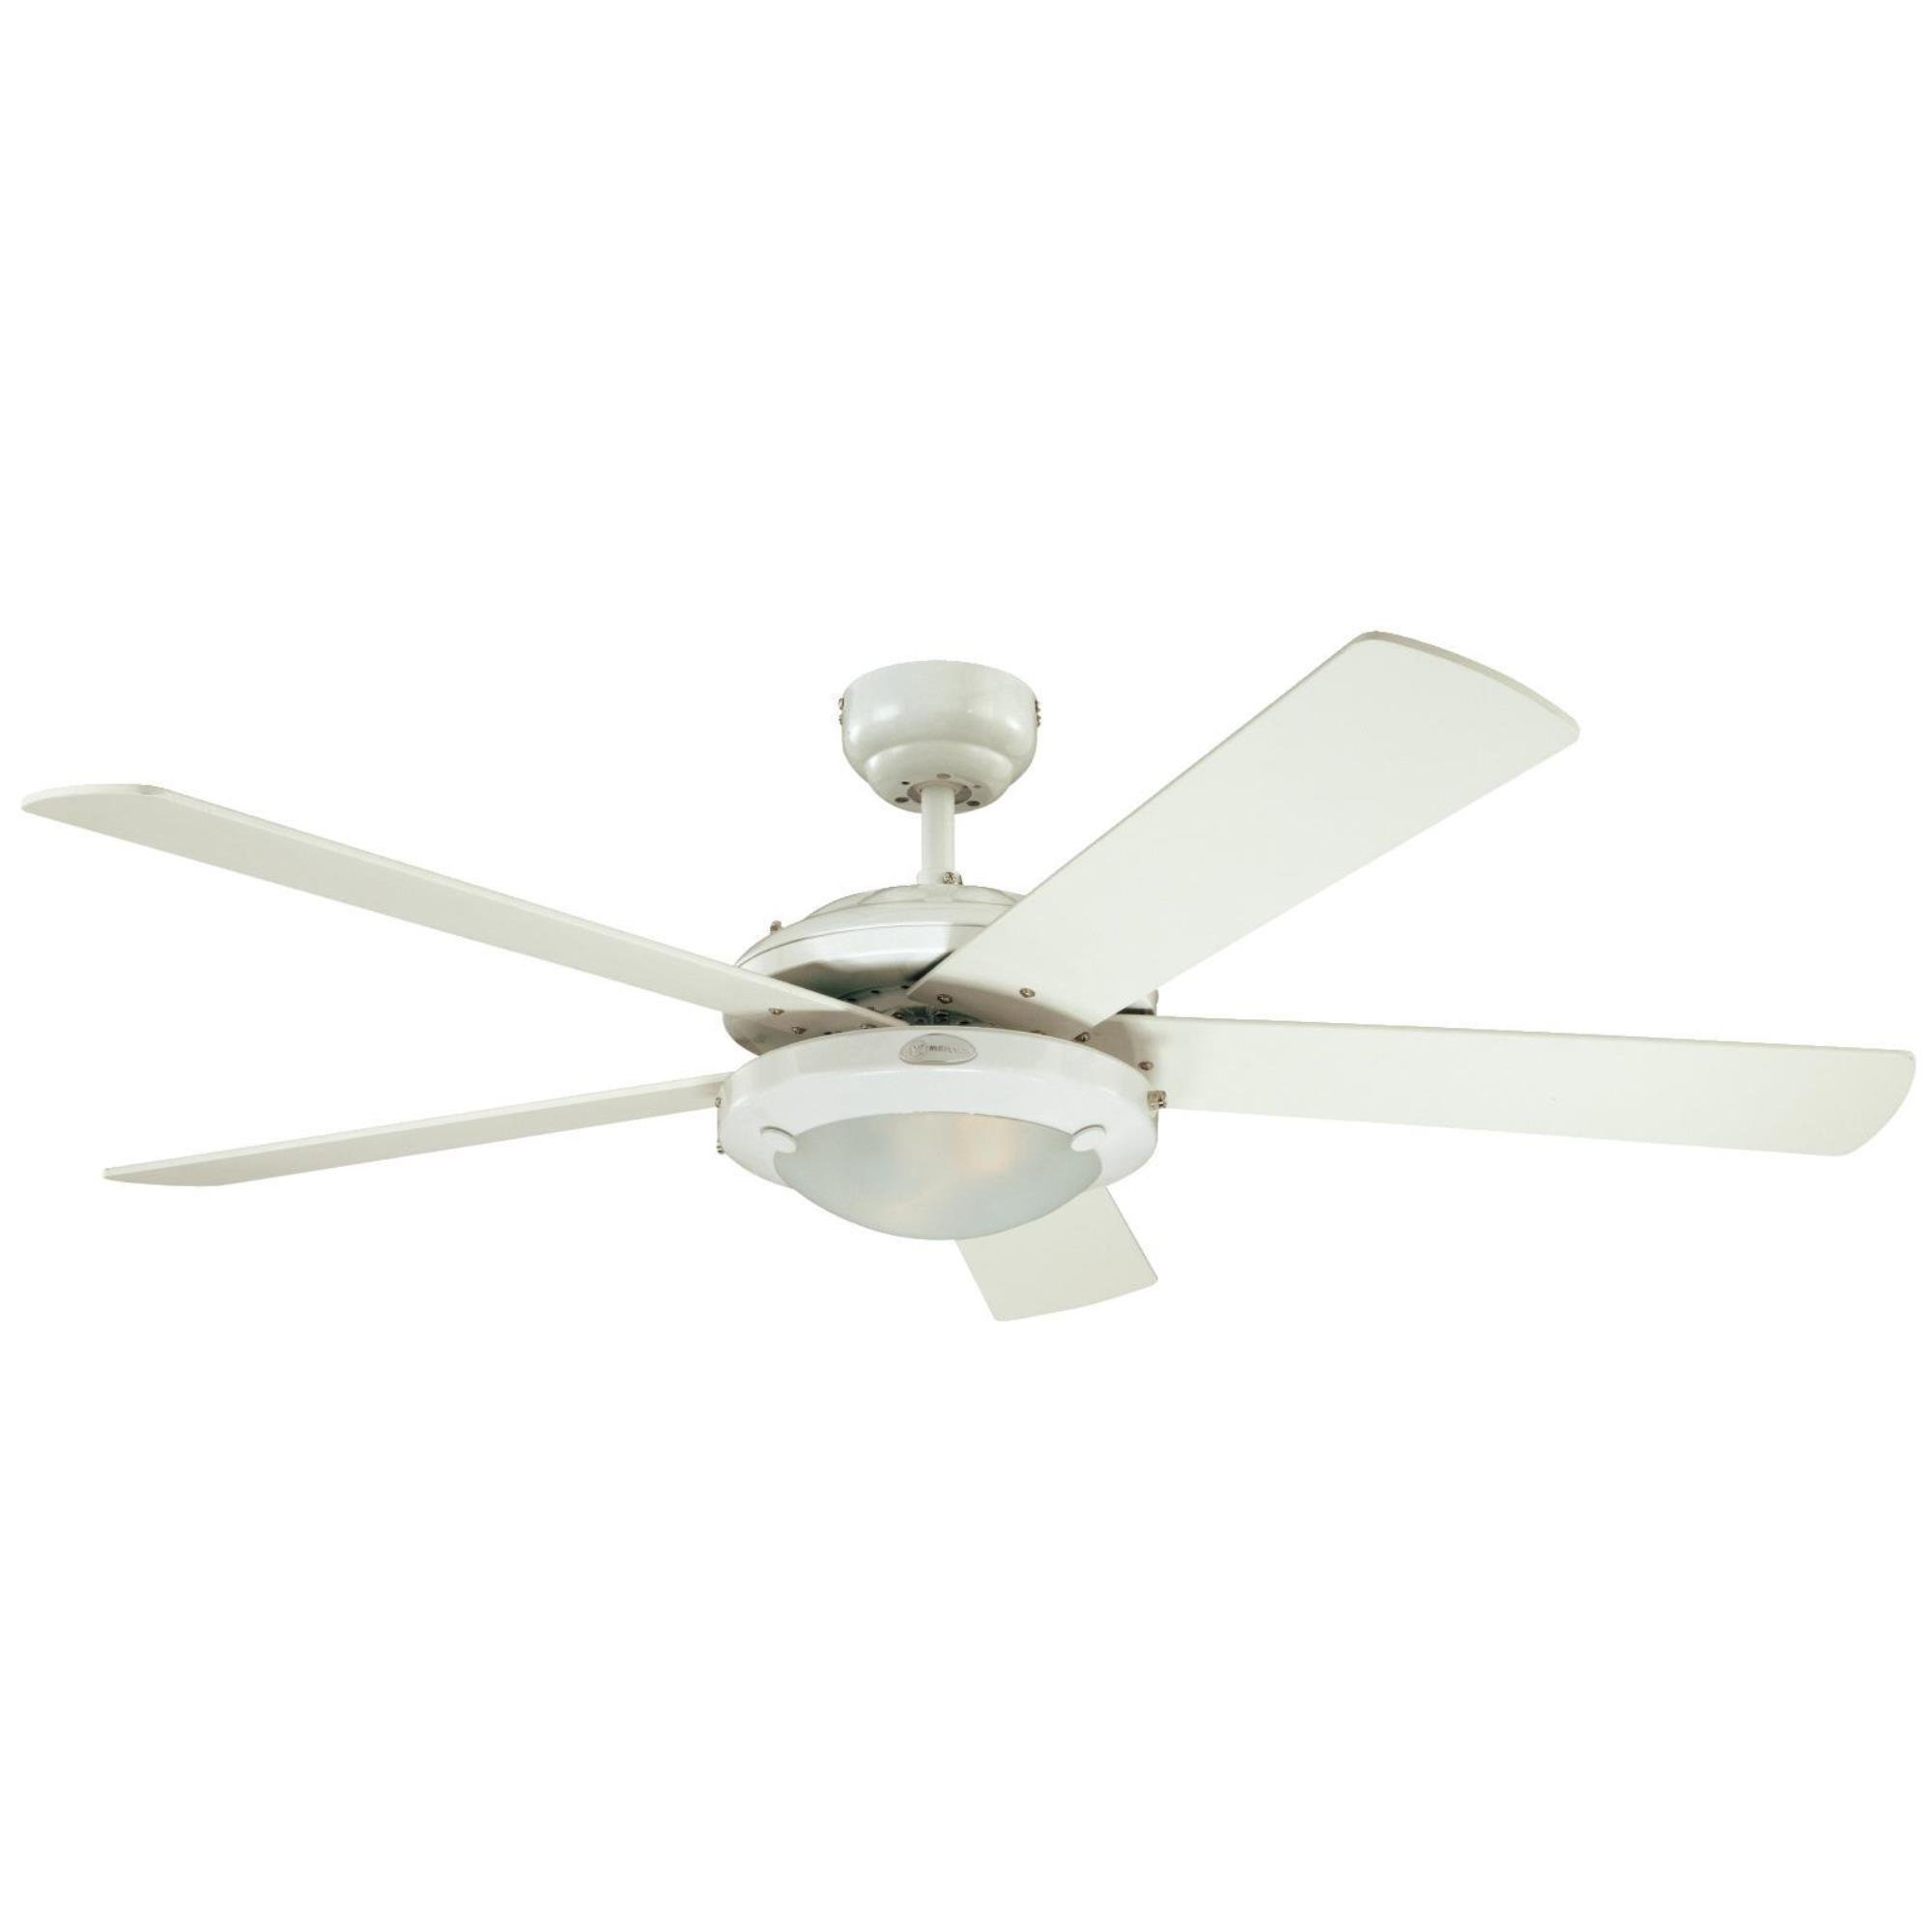 Westinghouse 7801720 Comet 52-Inch White Indoor Ceiling Fan, Light Kit with Frosted Glass